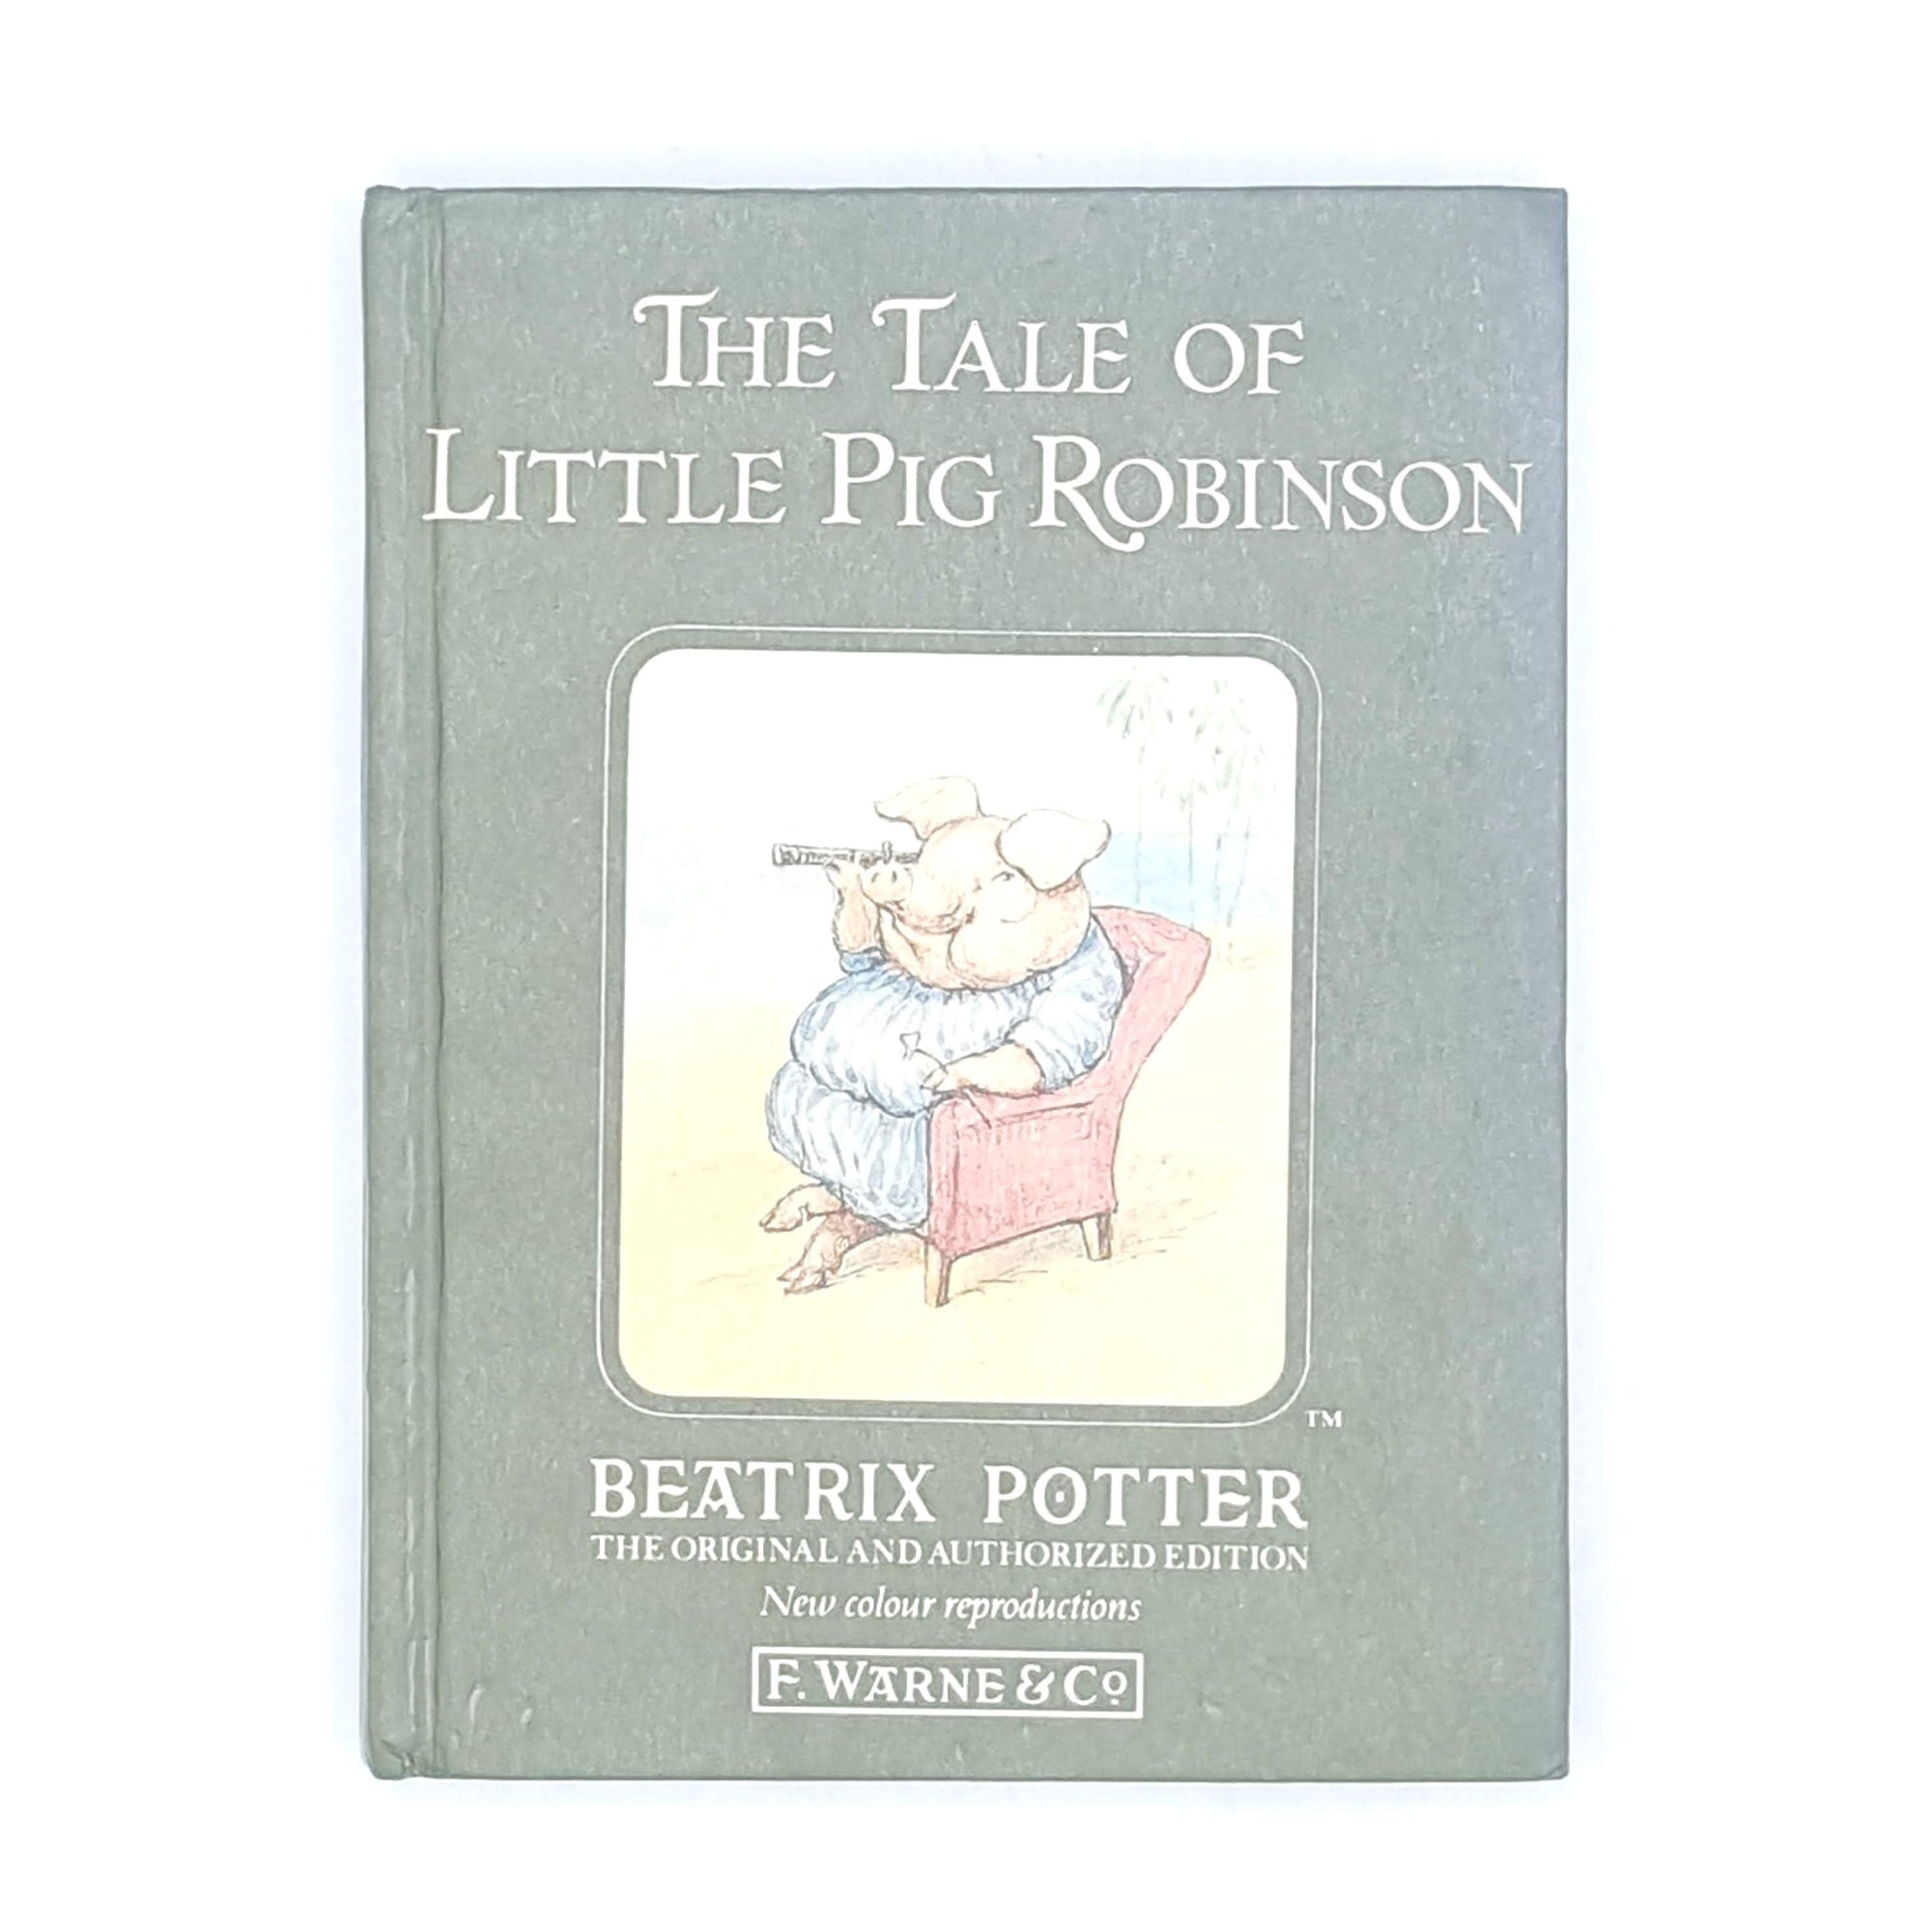 Beatrix Potter's The Tale of Little Pig Robinson, green cover